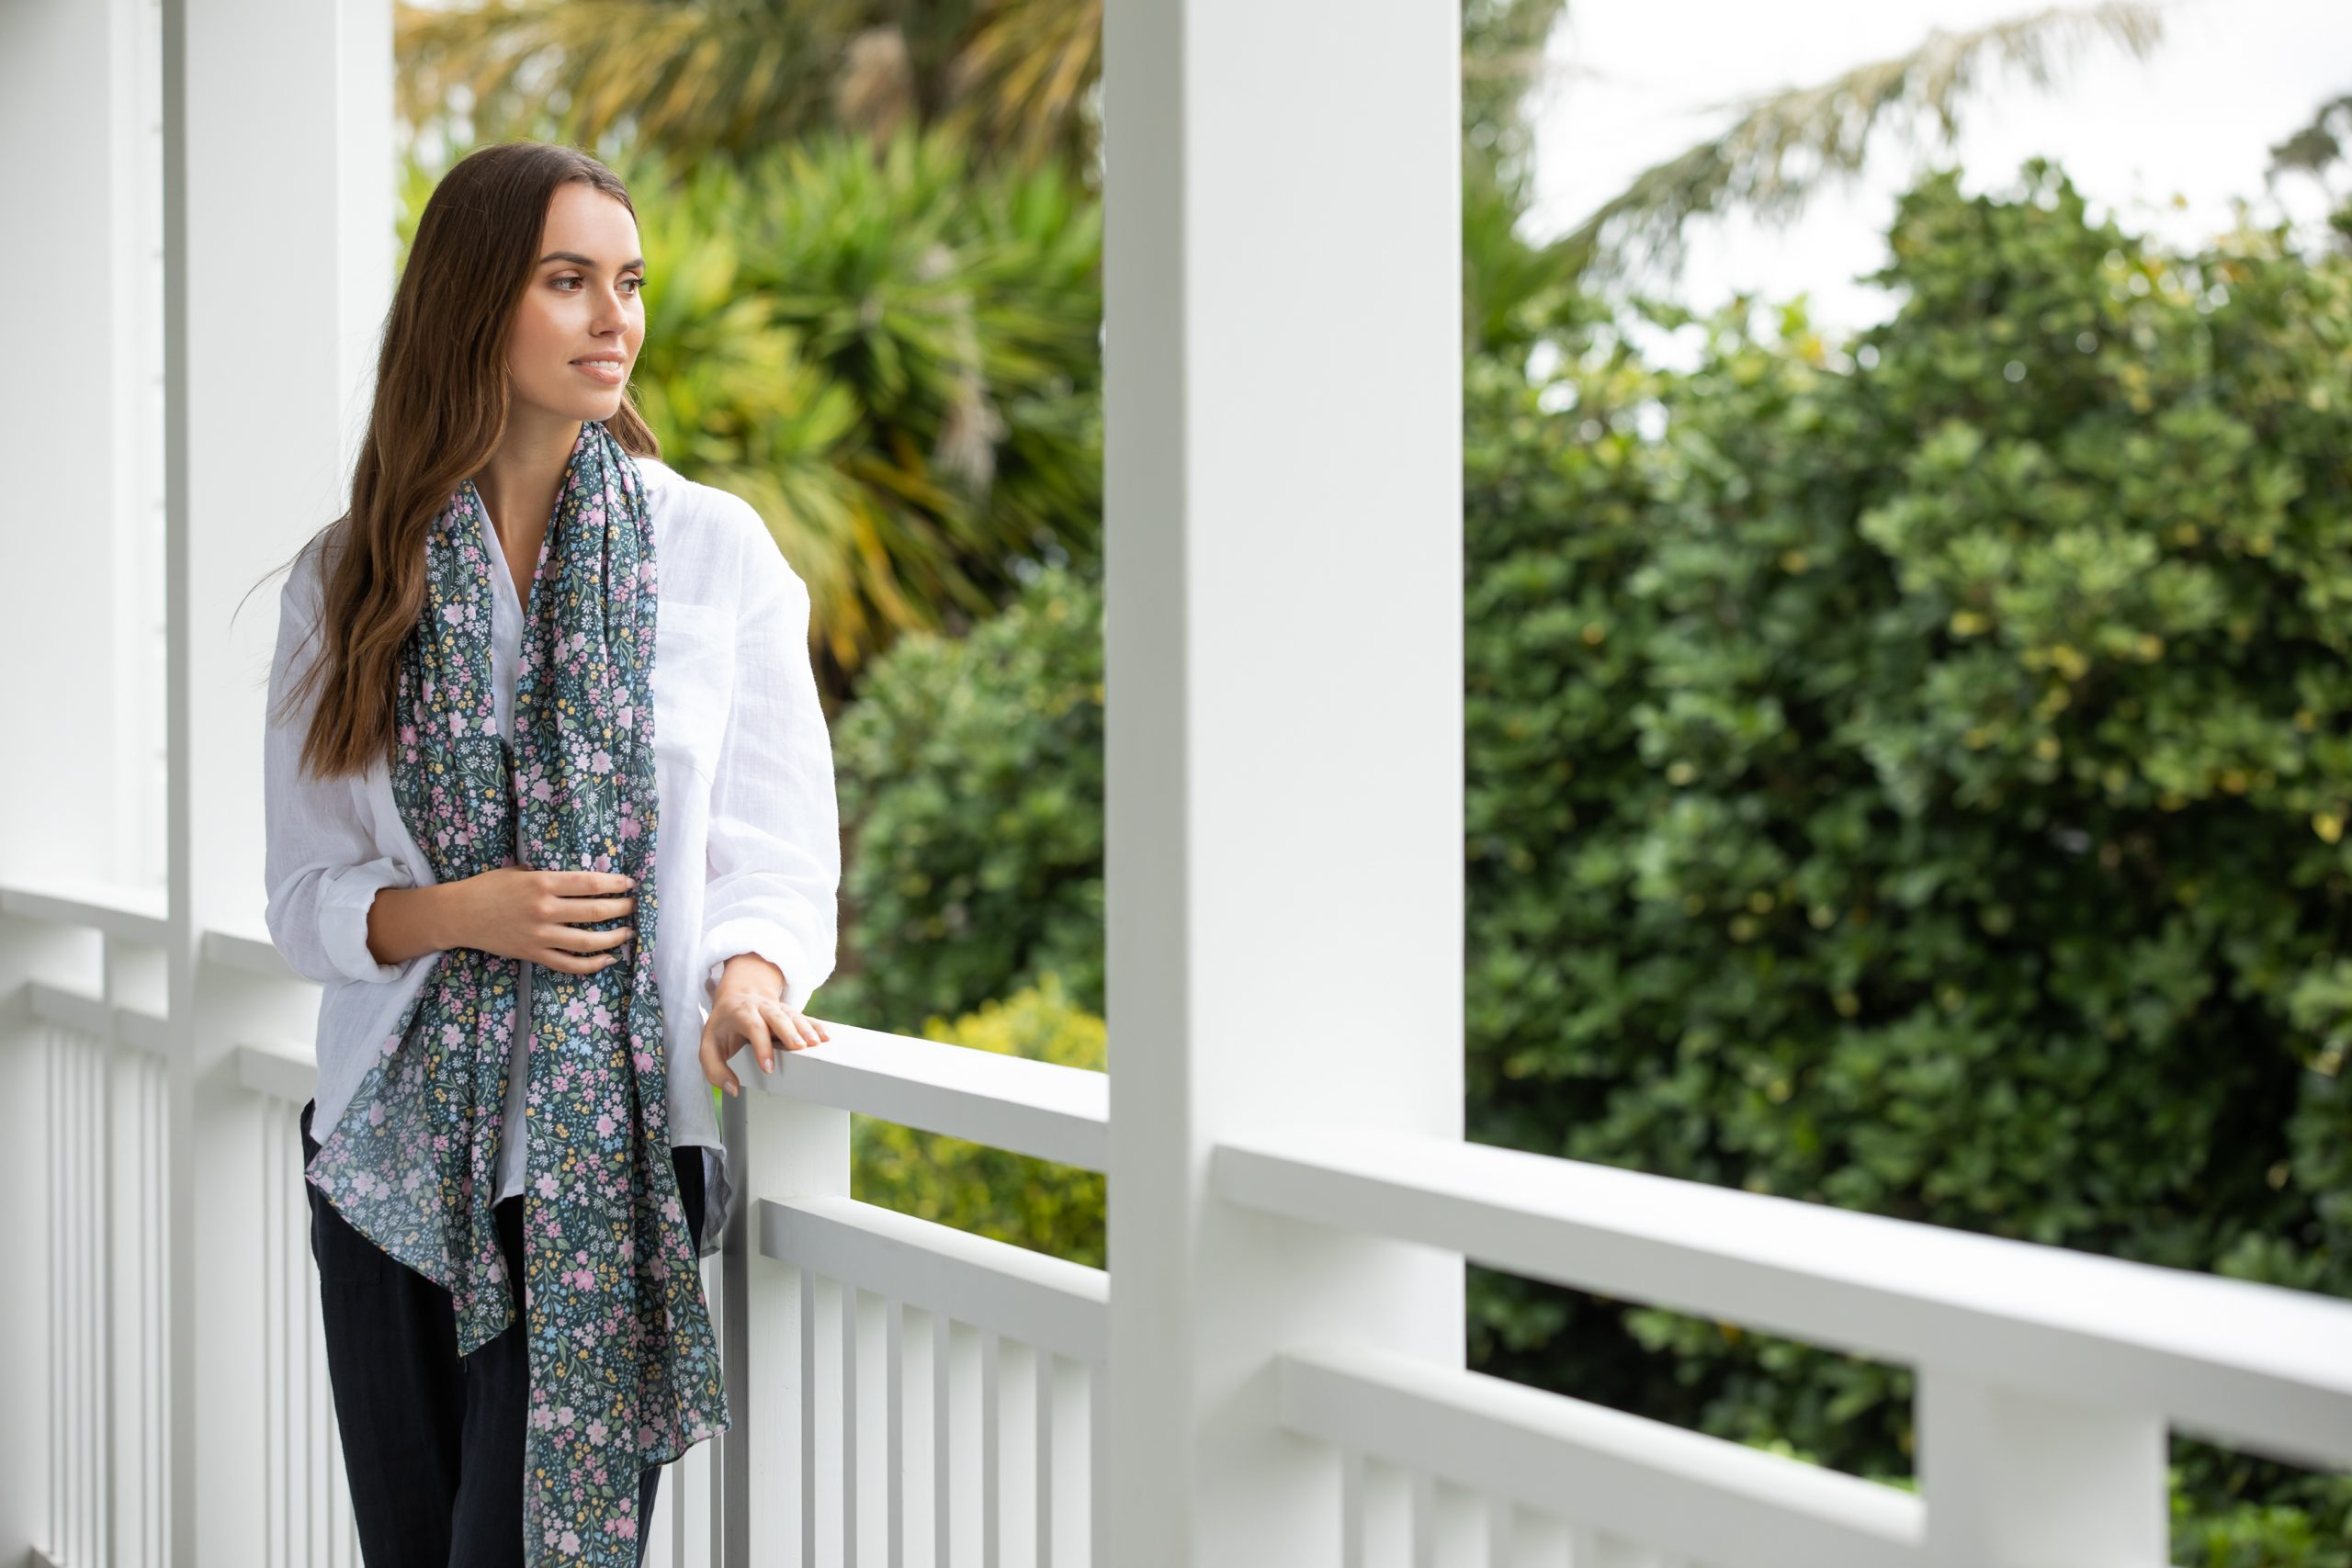 Wallace Cotton Journey Linen Shirt White $99.90 Pants Midnight $99.90 Fleur Wrap 4 $54.90